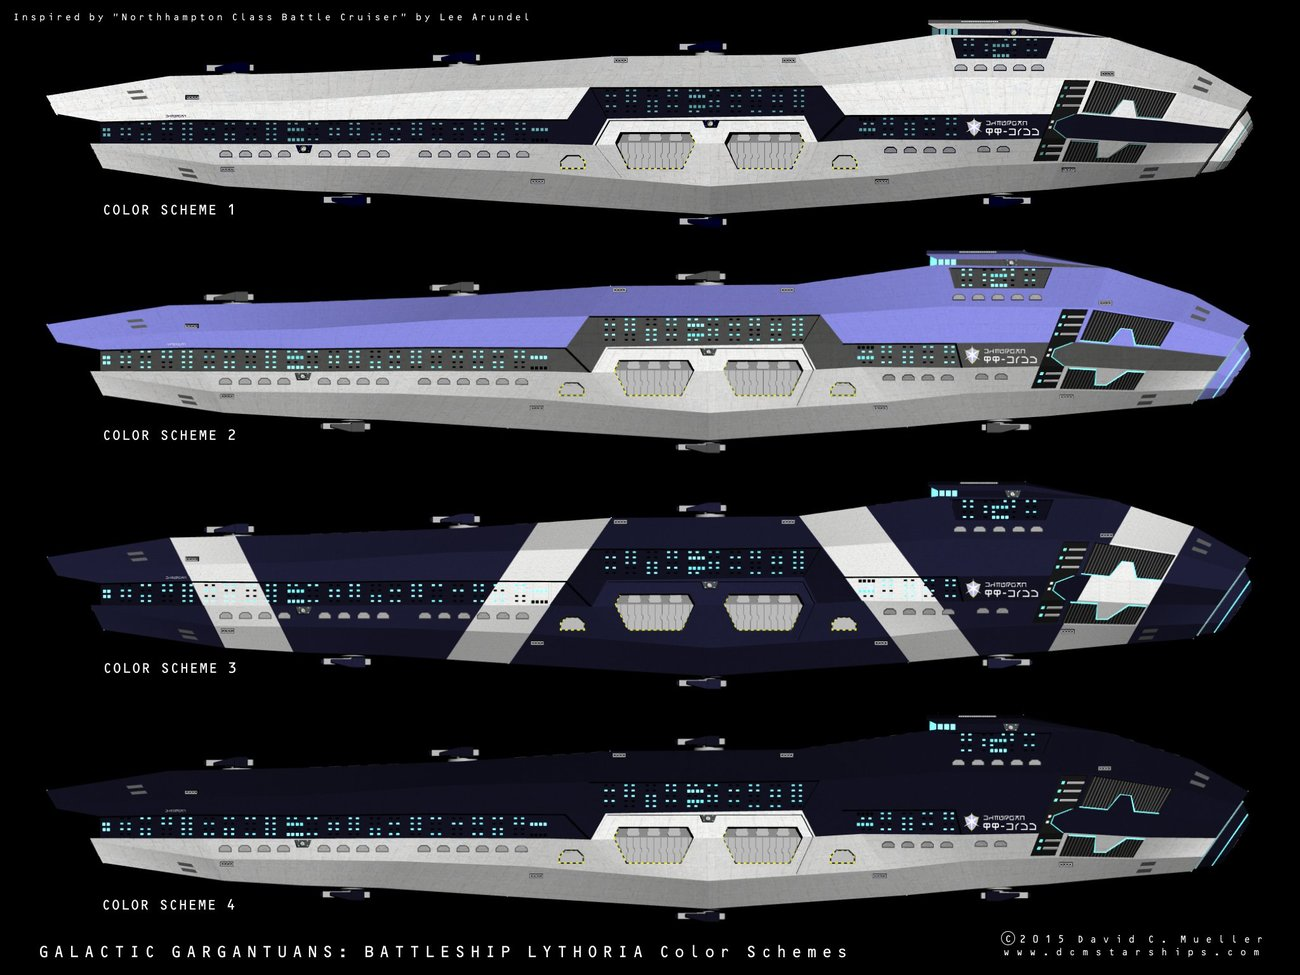 Battleship Lythoria Color Schemes